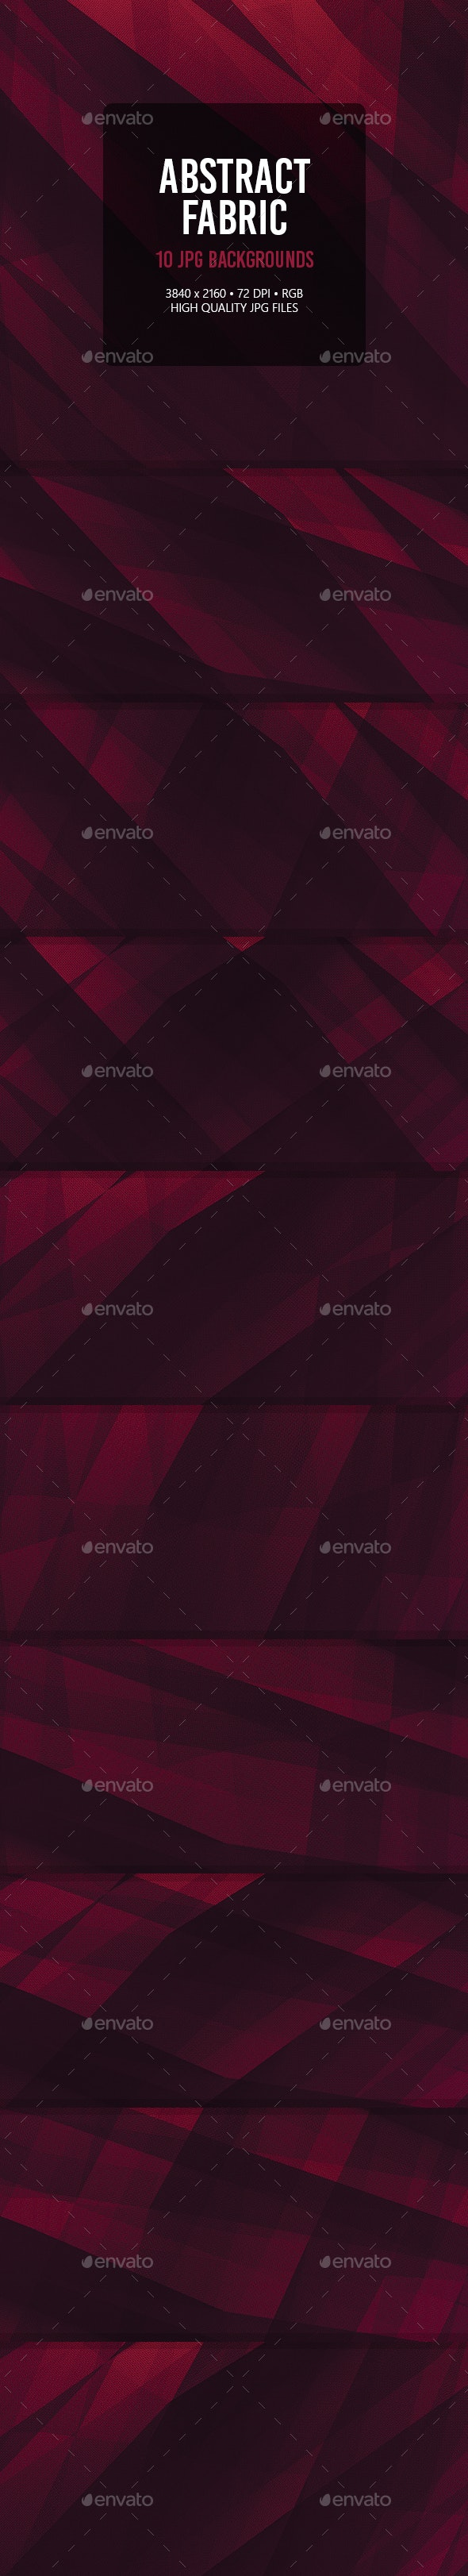 Abstract Fabric Backgrounds - Abstract Backgrounds